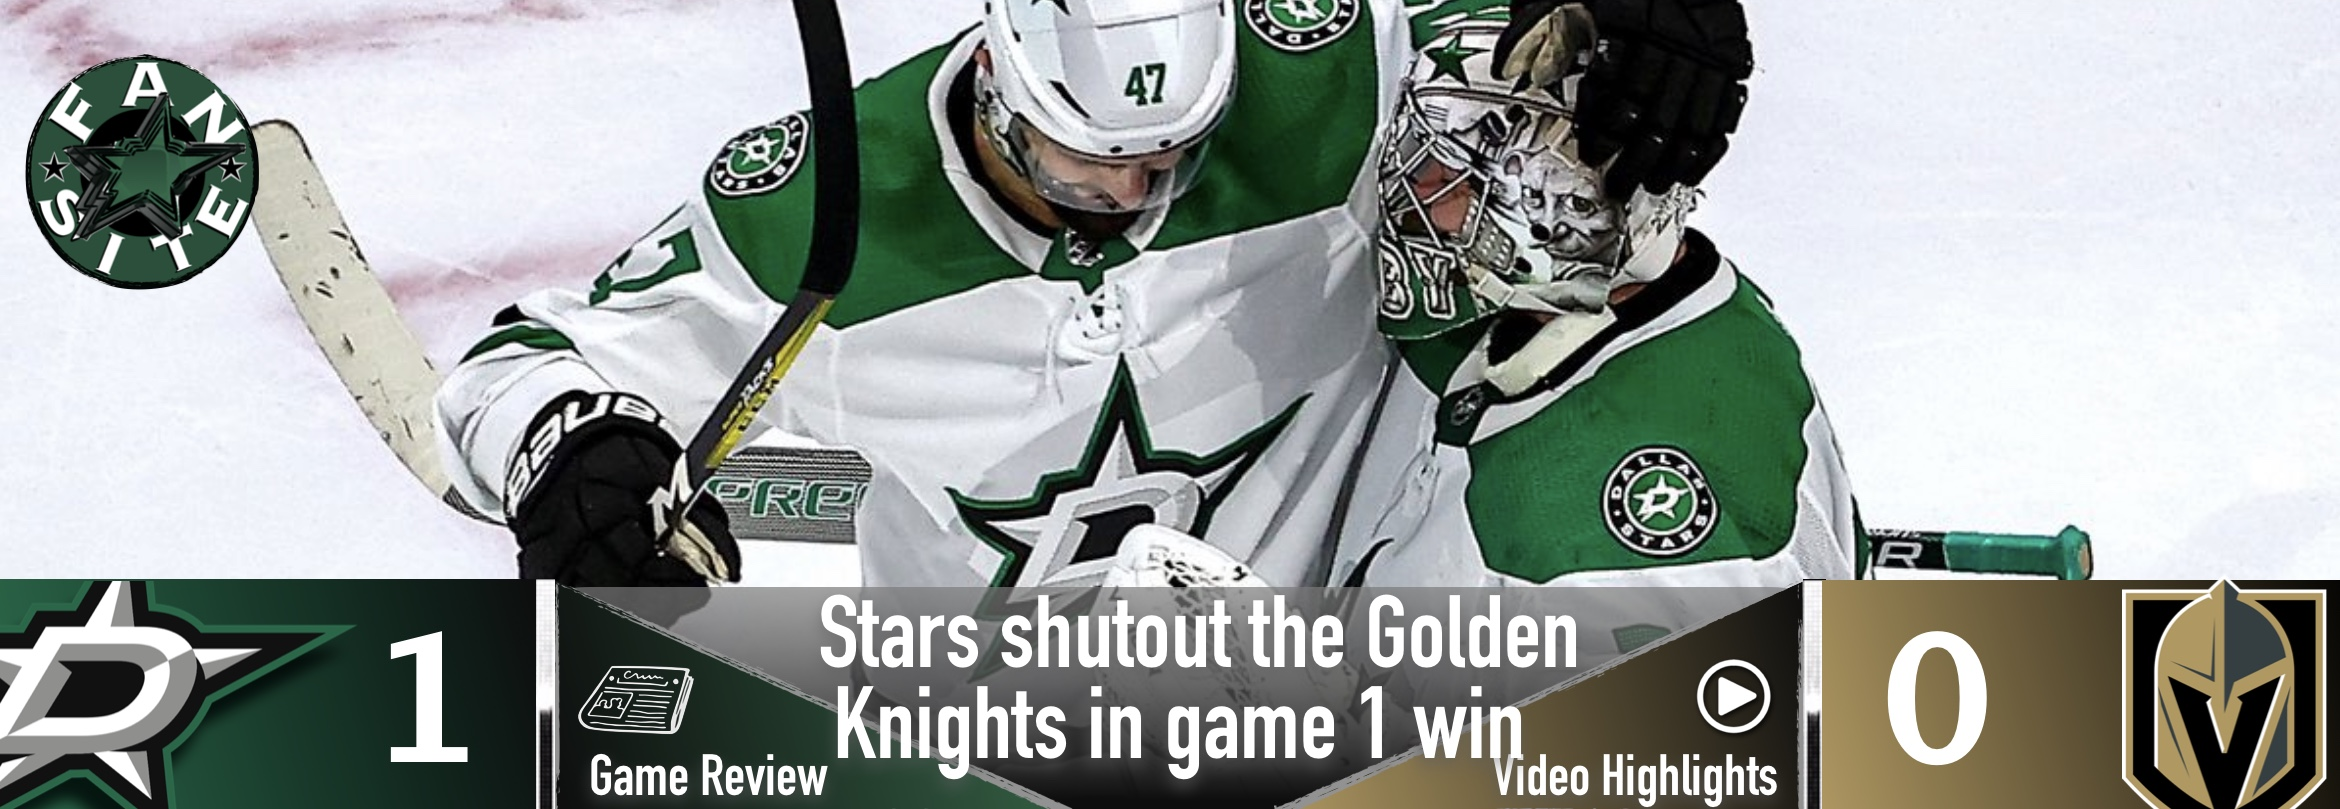 Stars shut out the Golden Knights in game 1 win